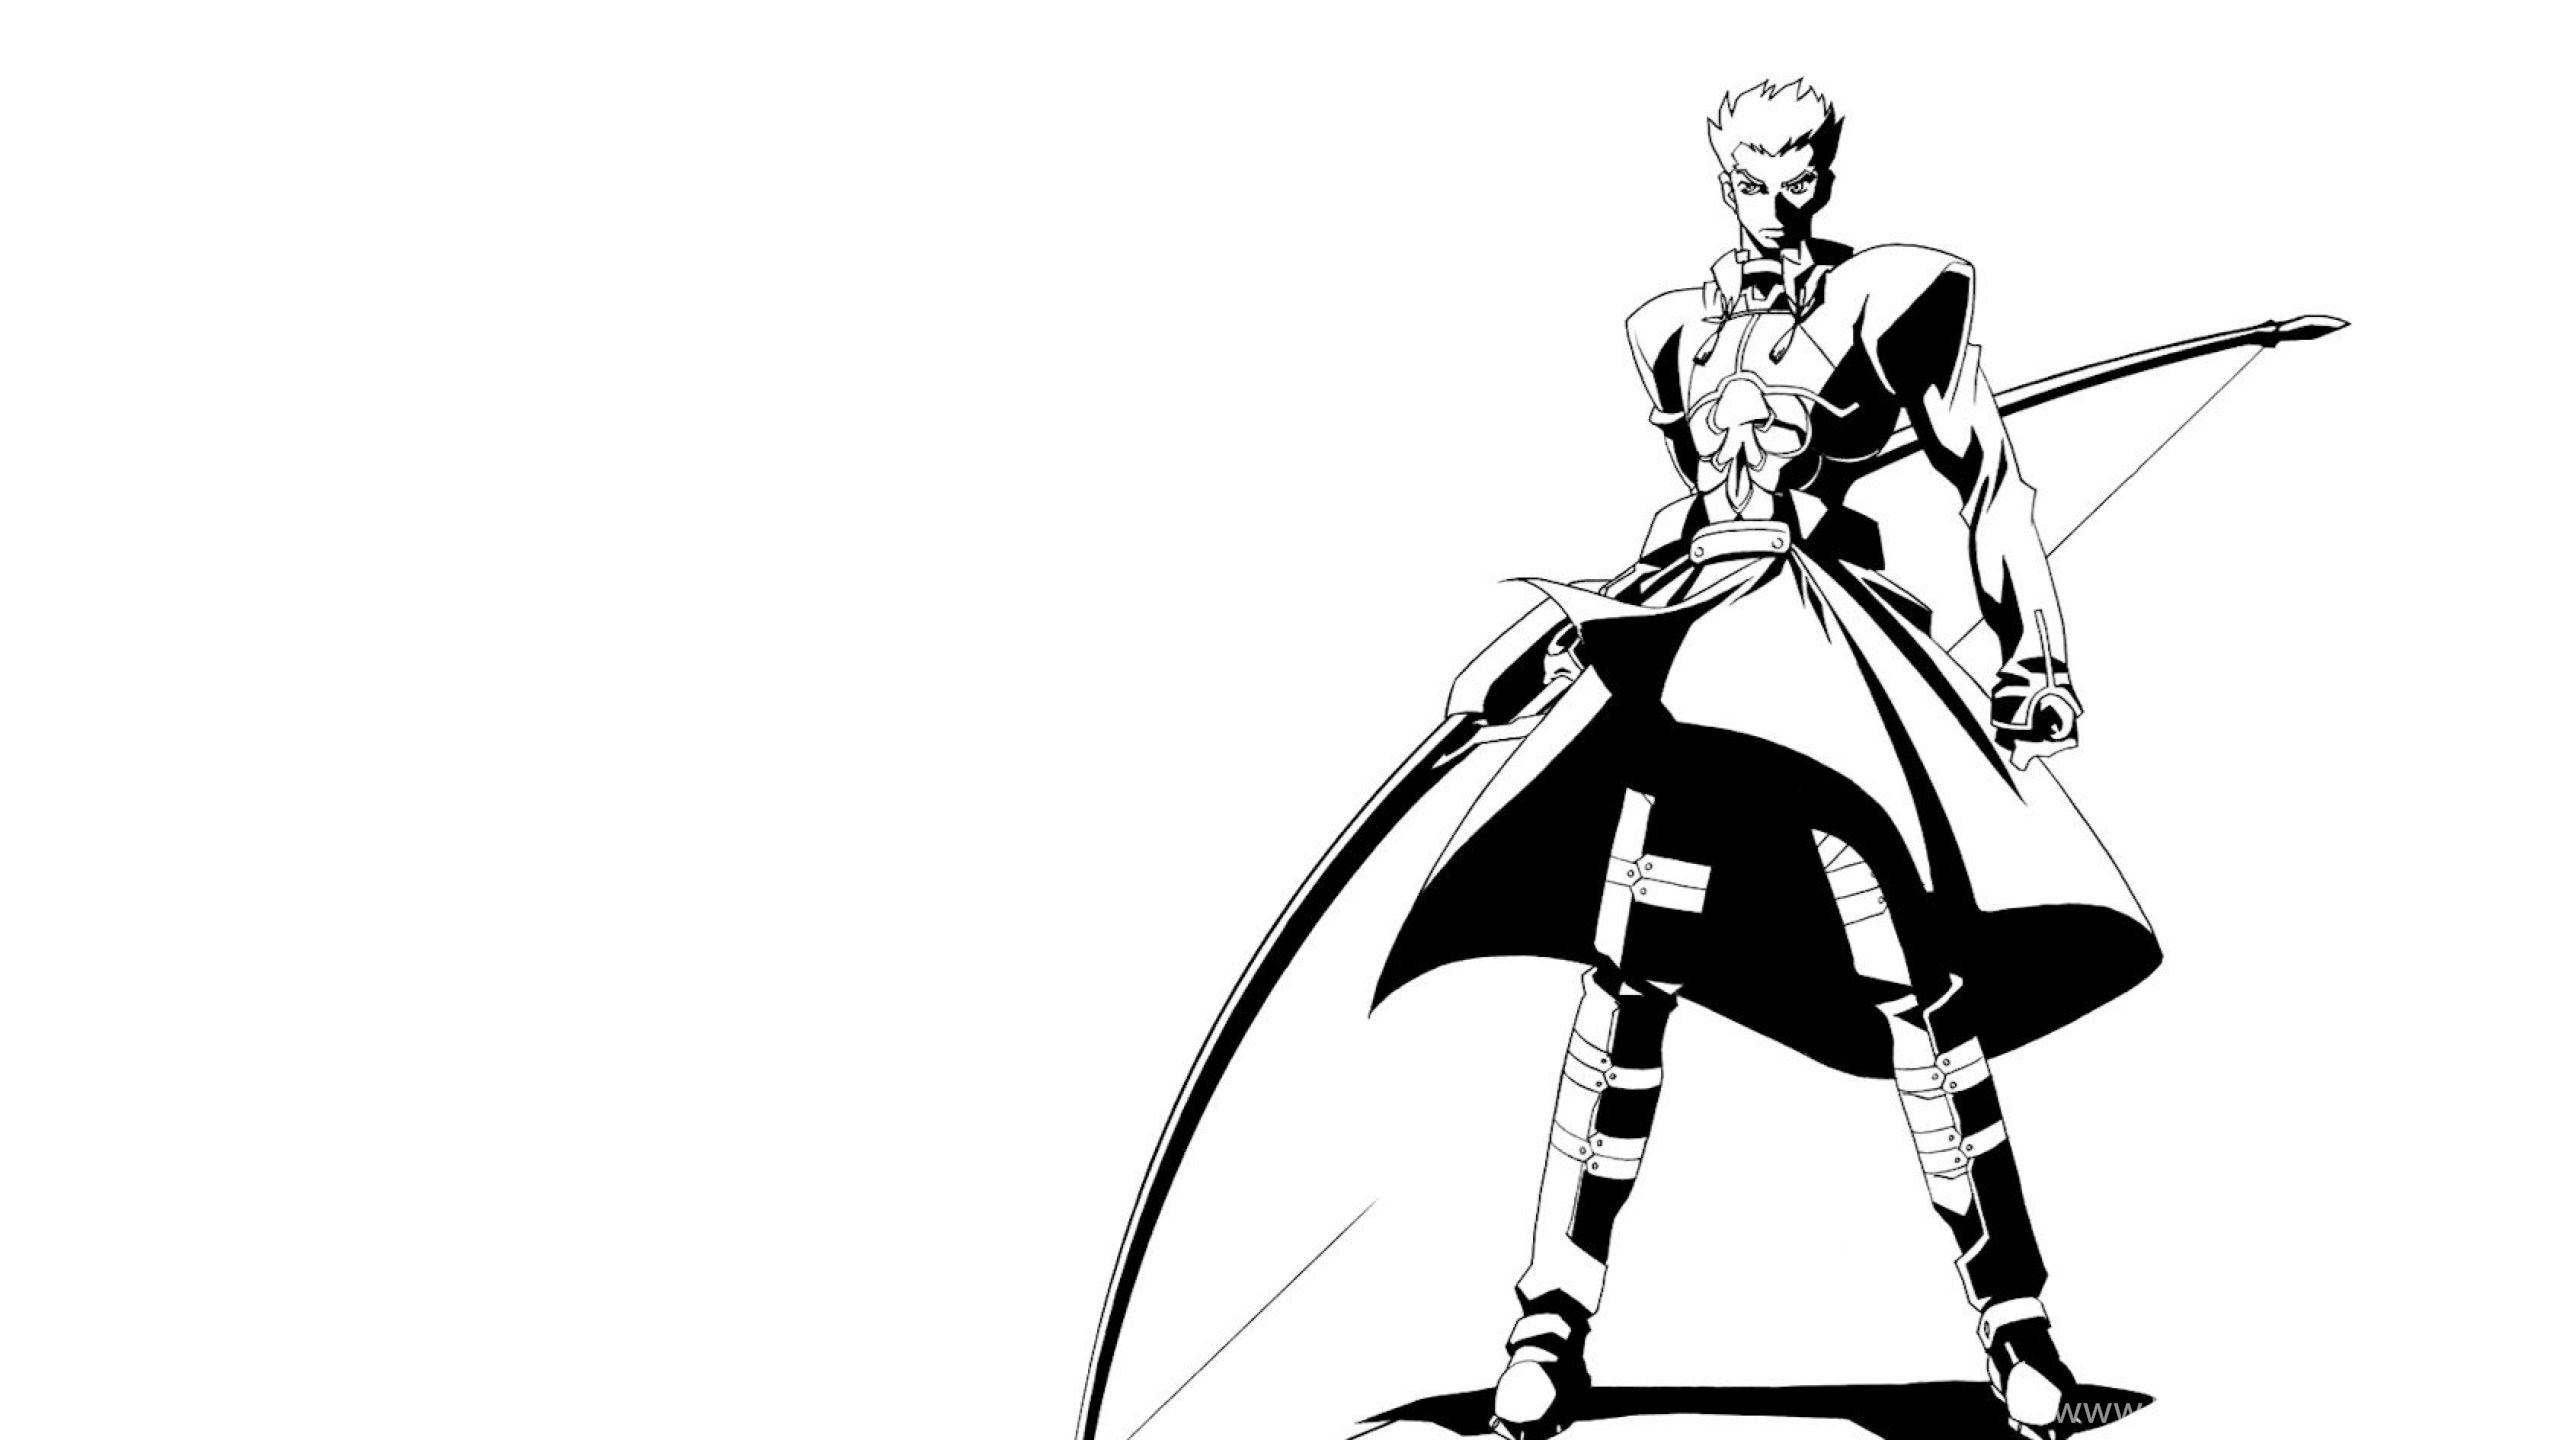 download wallpapers 2560x1440 anime, boy, black and white, arms